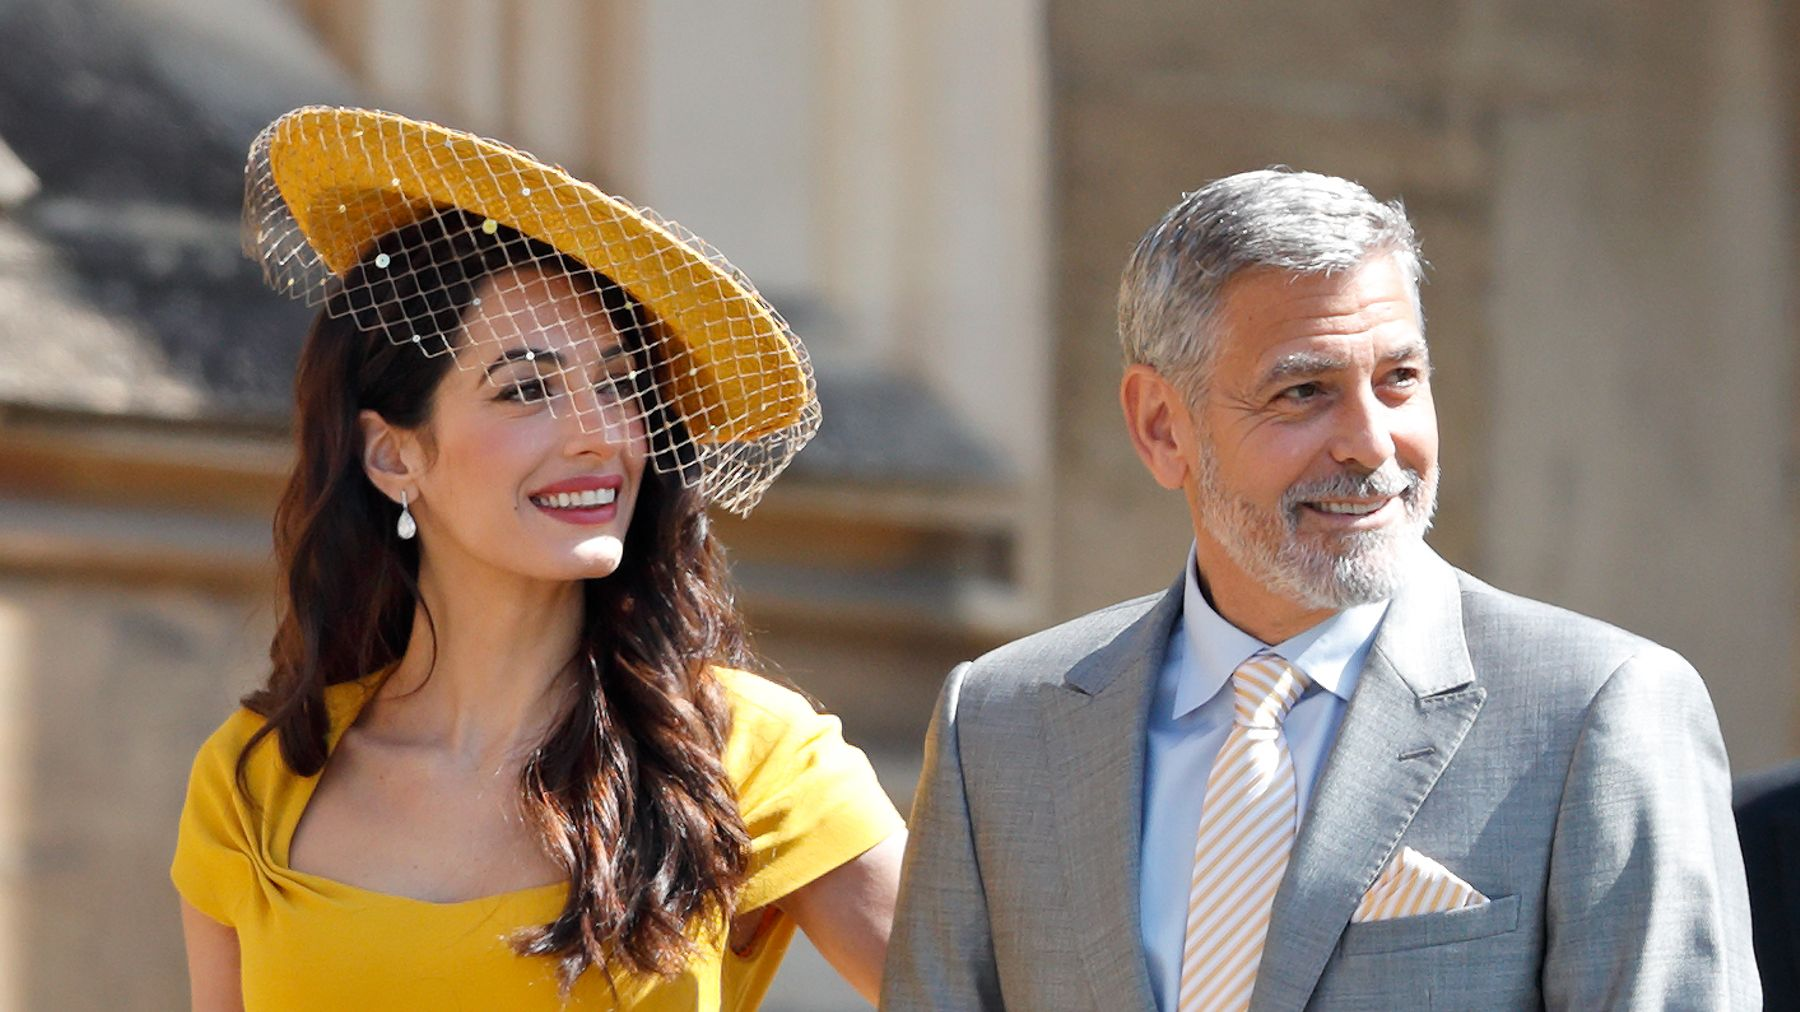 Amal Clooney Royal Wedding.George And Amal Clooney S Royal Wedding Invite A Tequila Based